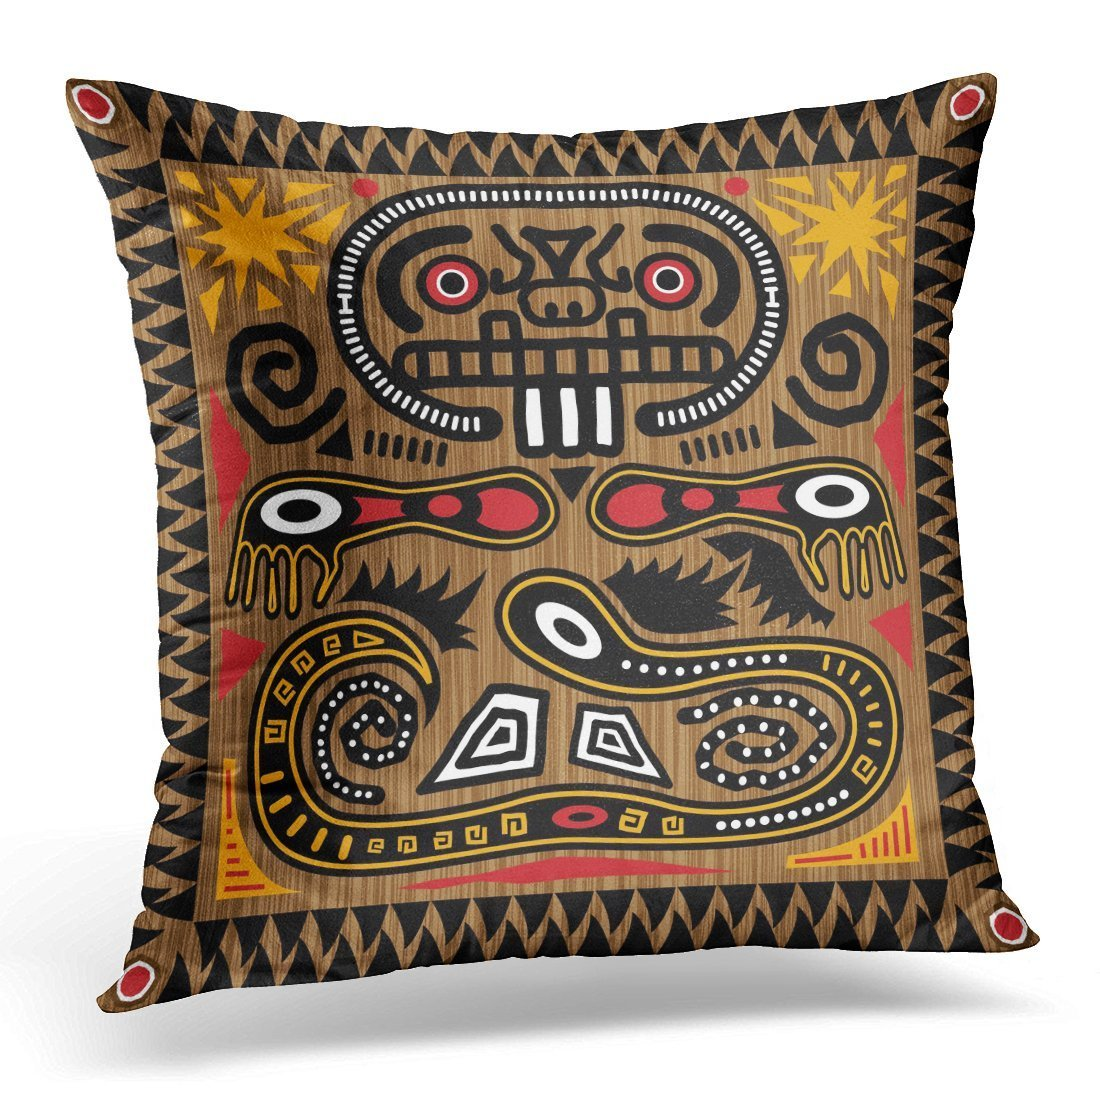 SPXUBZ Black Inca Aztec Tribal Pattern in Earth Tones Brown Mayan Aboriginal Decorative Home Decor Square Indoor/Outdoor Pillowcase Size: 16x16 Inch(Two Sides)